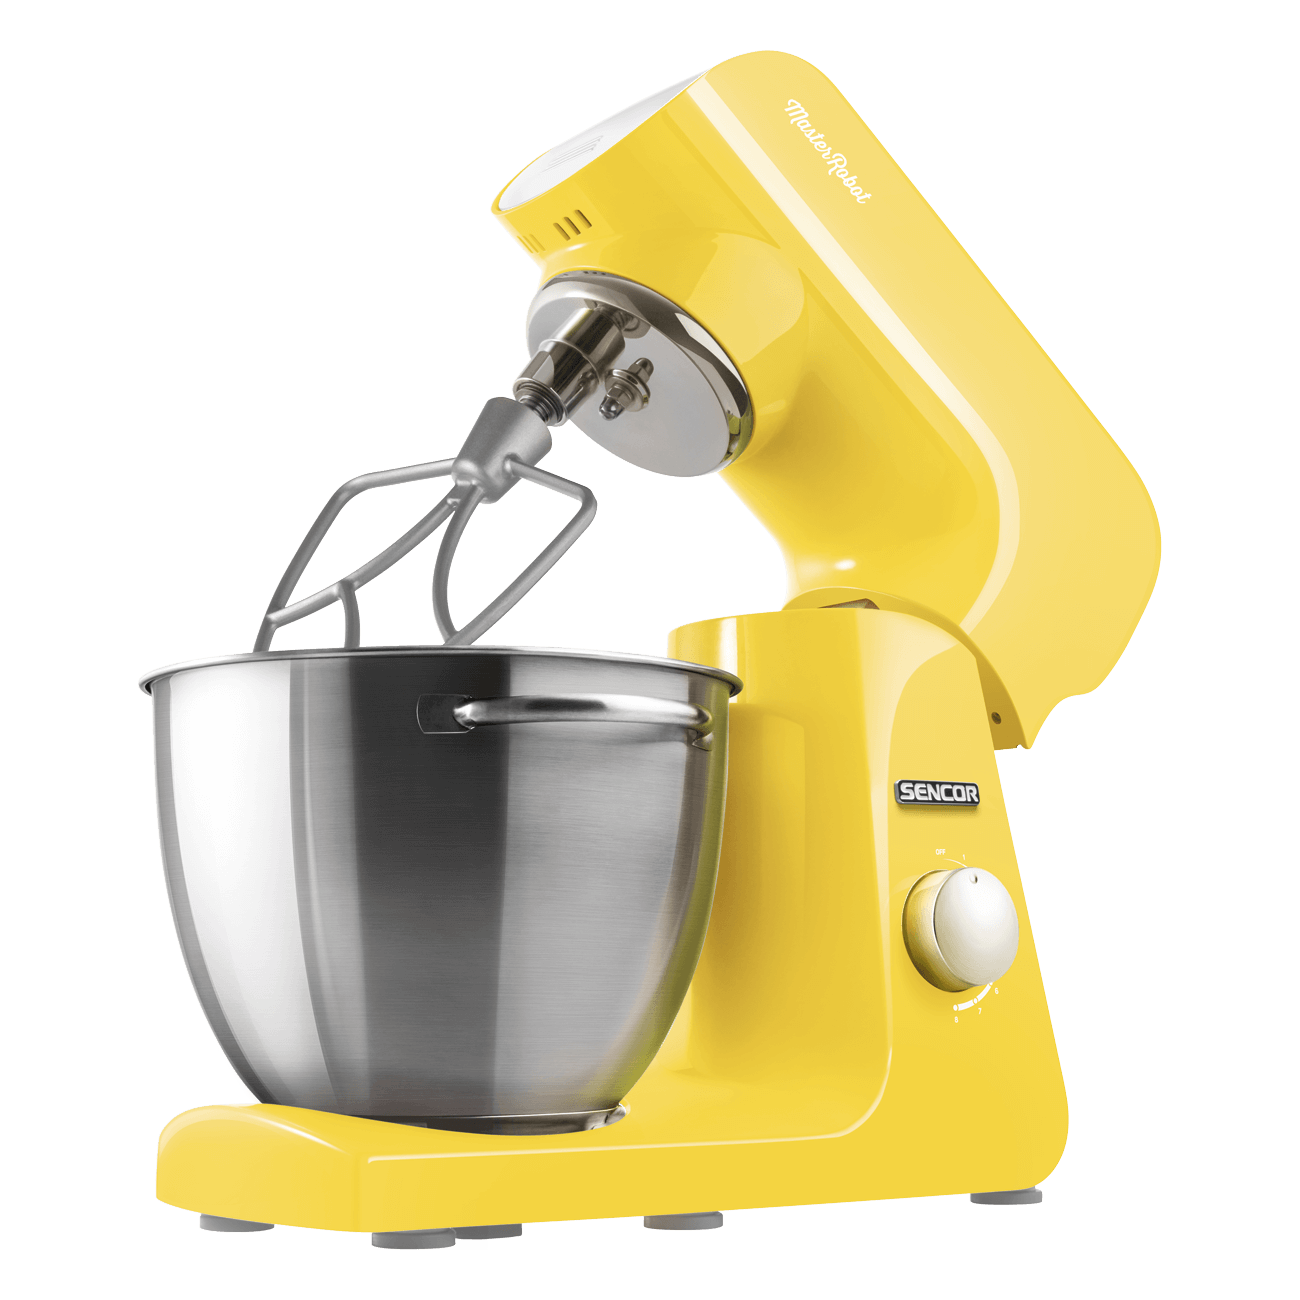 SENCOR MIXER PASTEL YELLOW malta, appliances malta, household malta, electronics malta, attards households malta